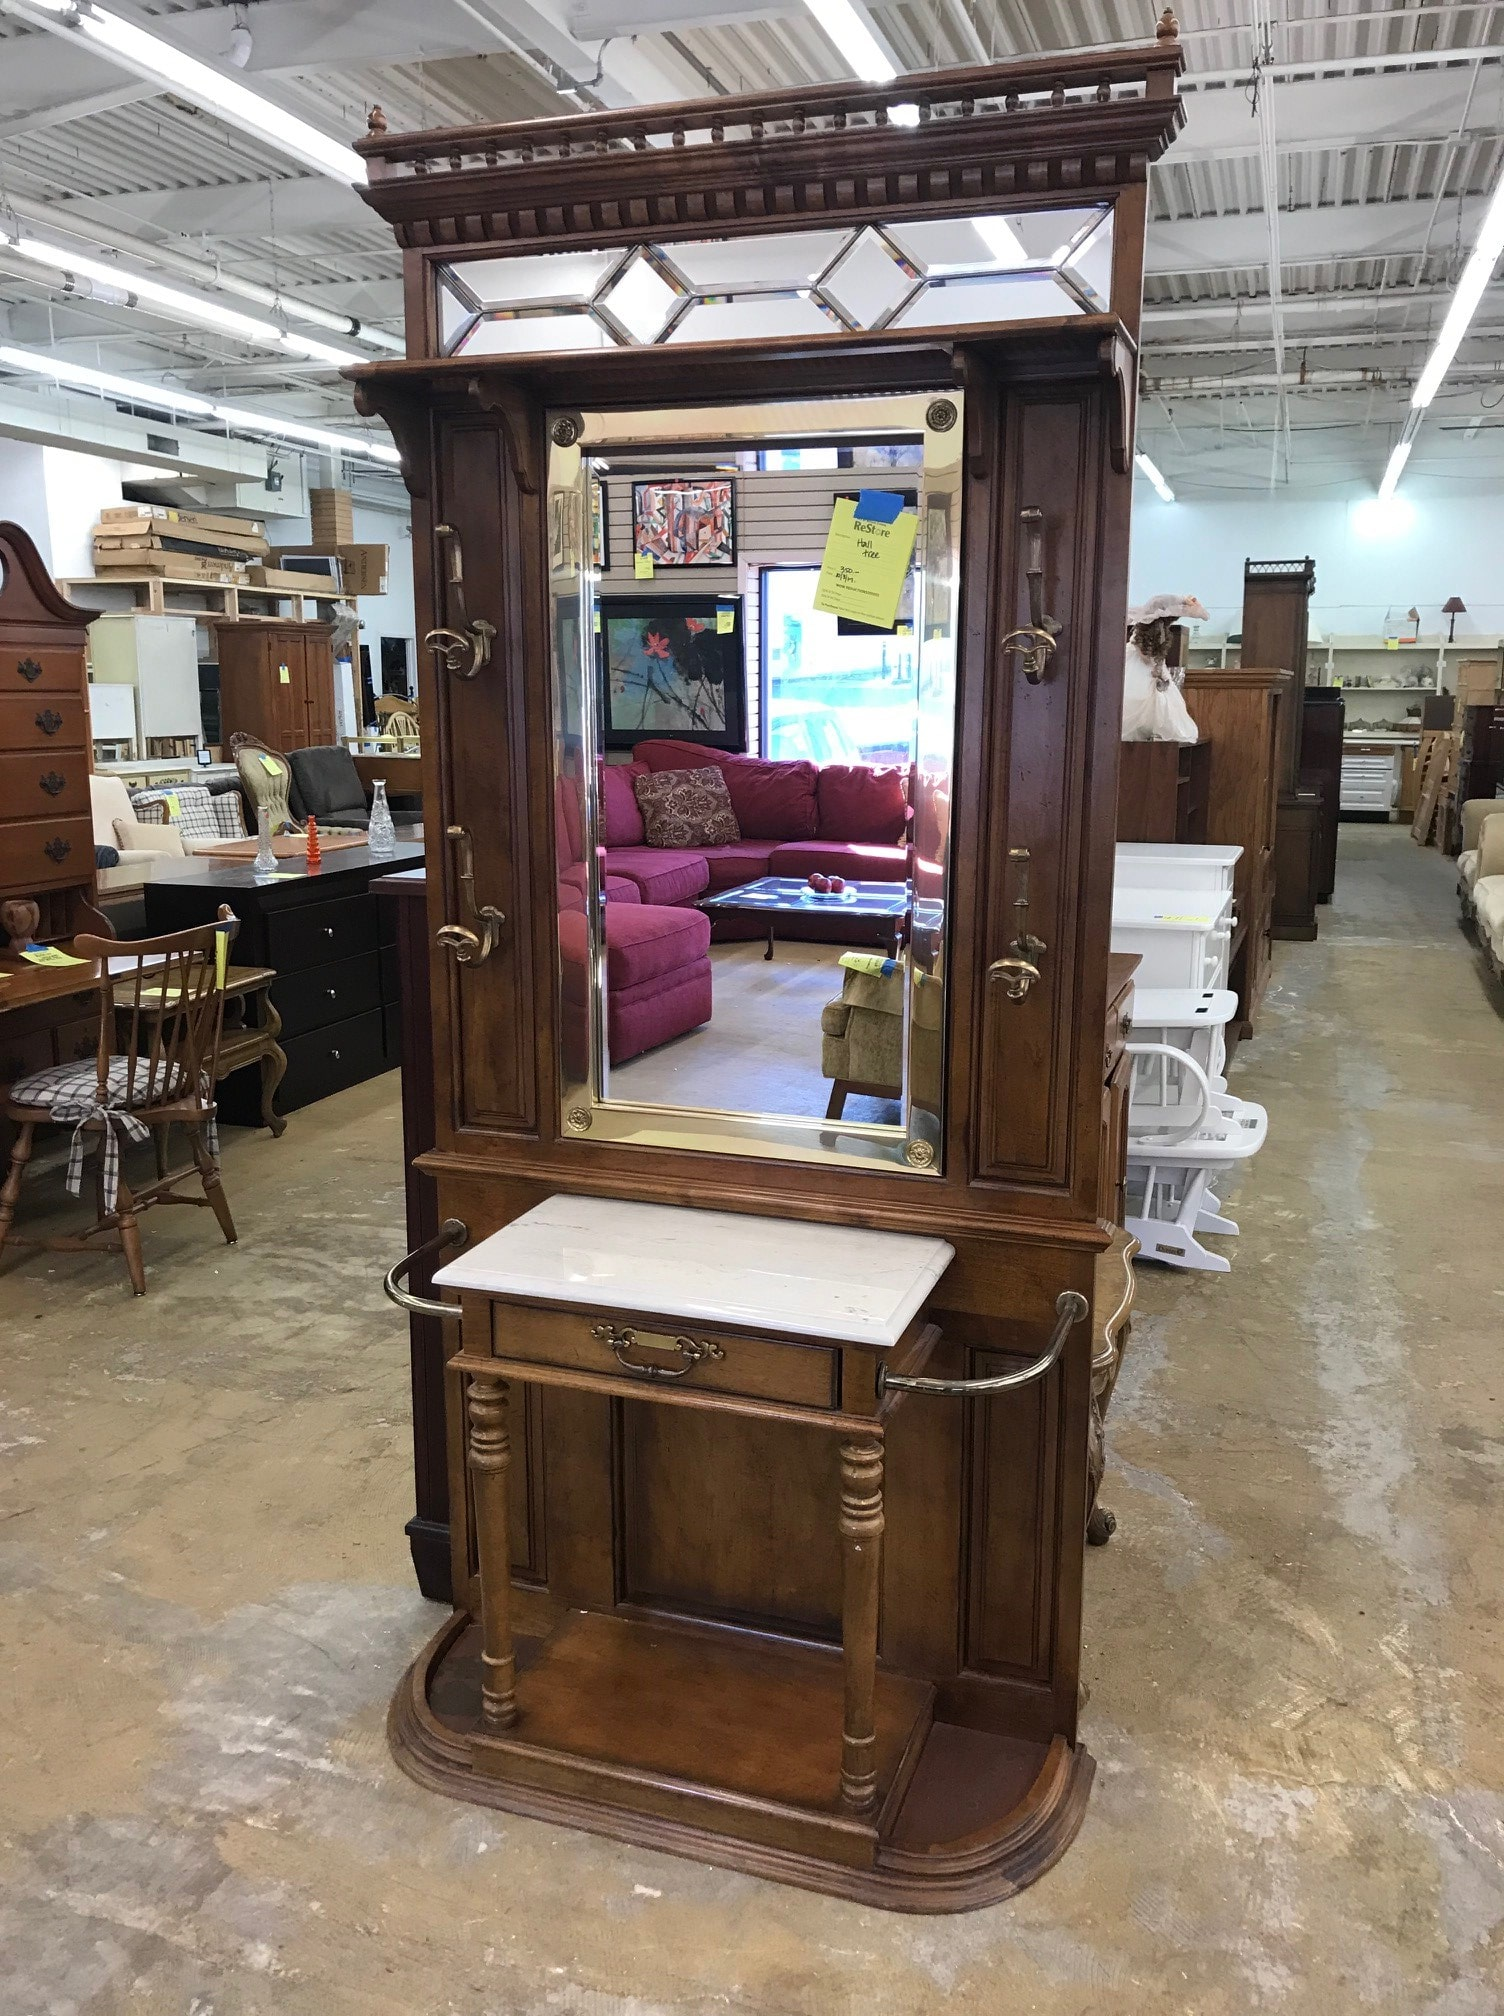 Habitat ReStore Bergen NJ - Furniture for Sale in NJ (9)-min.jpg